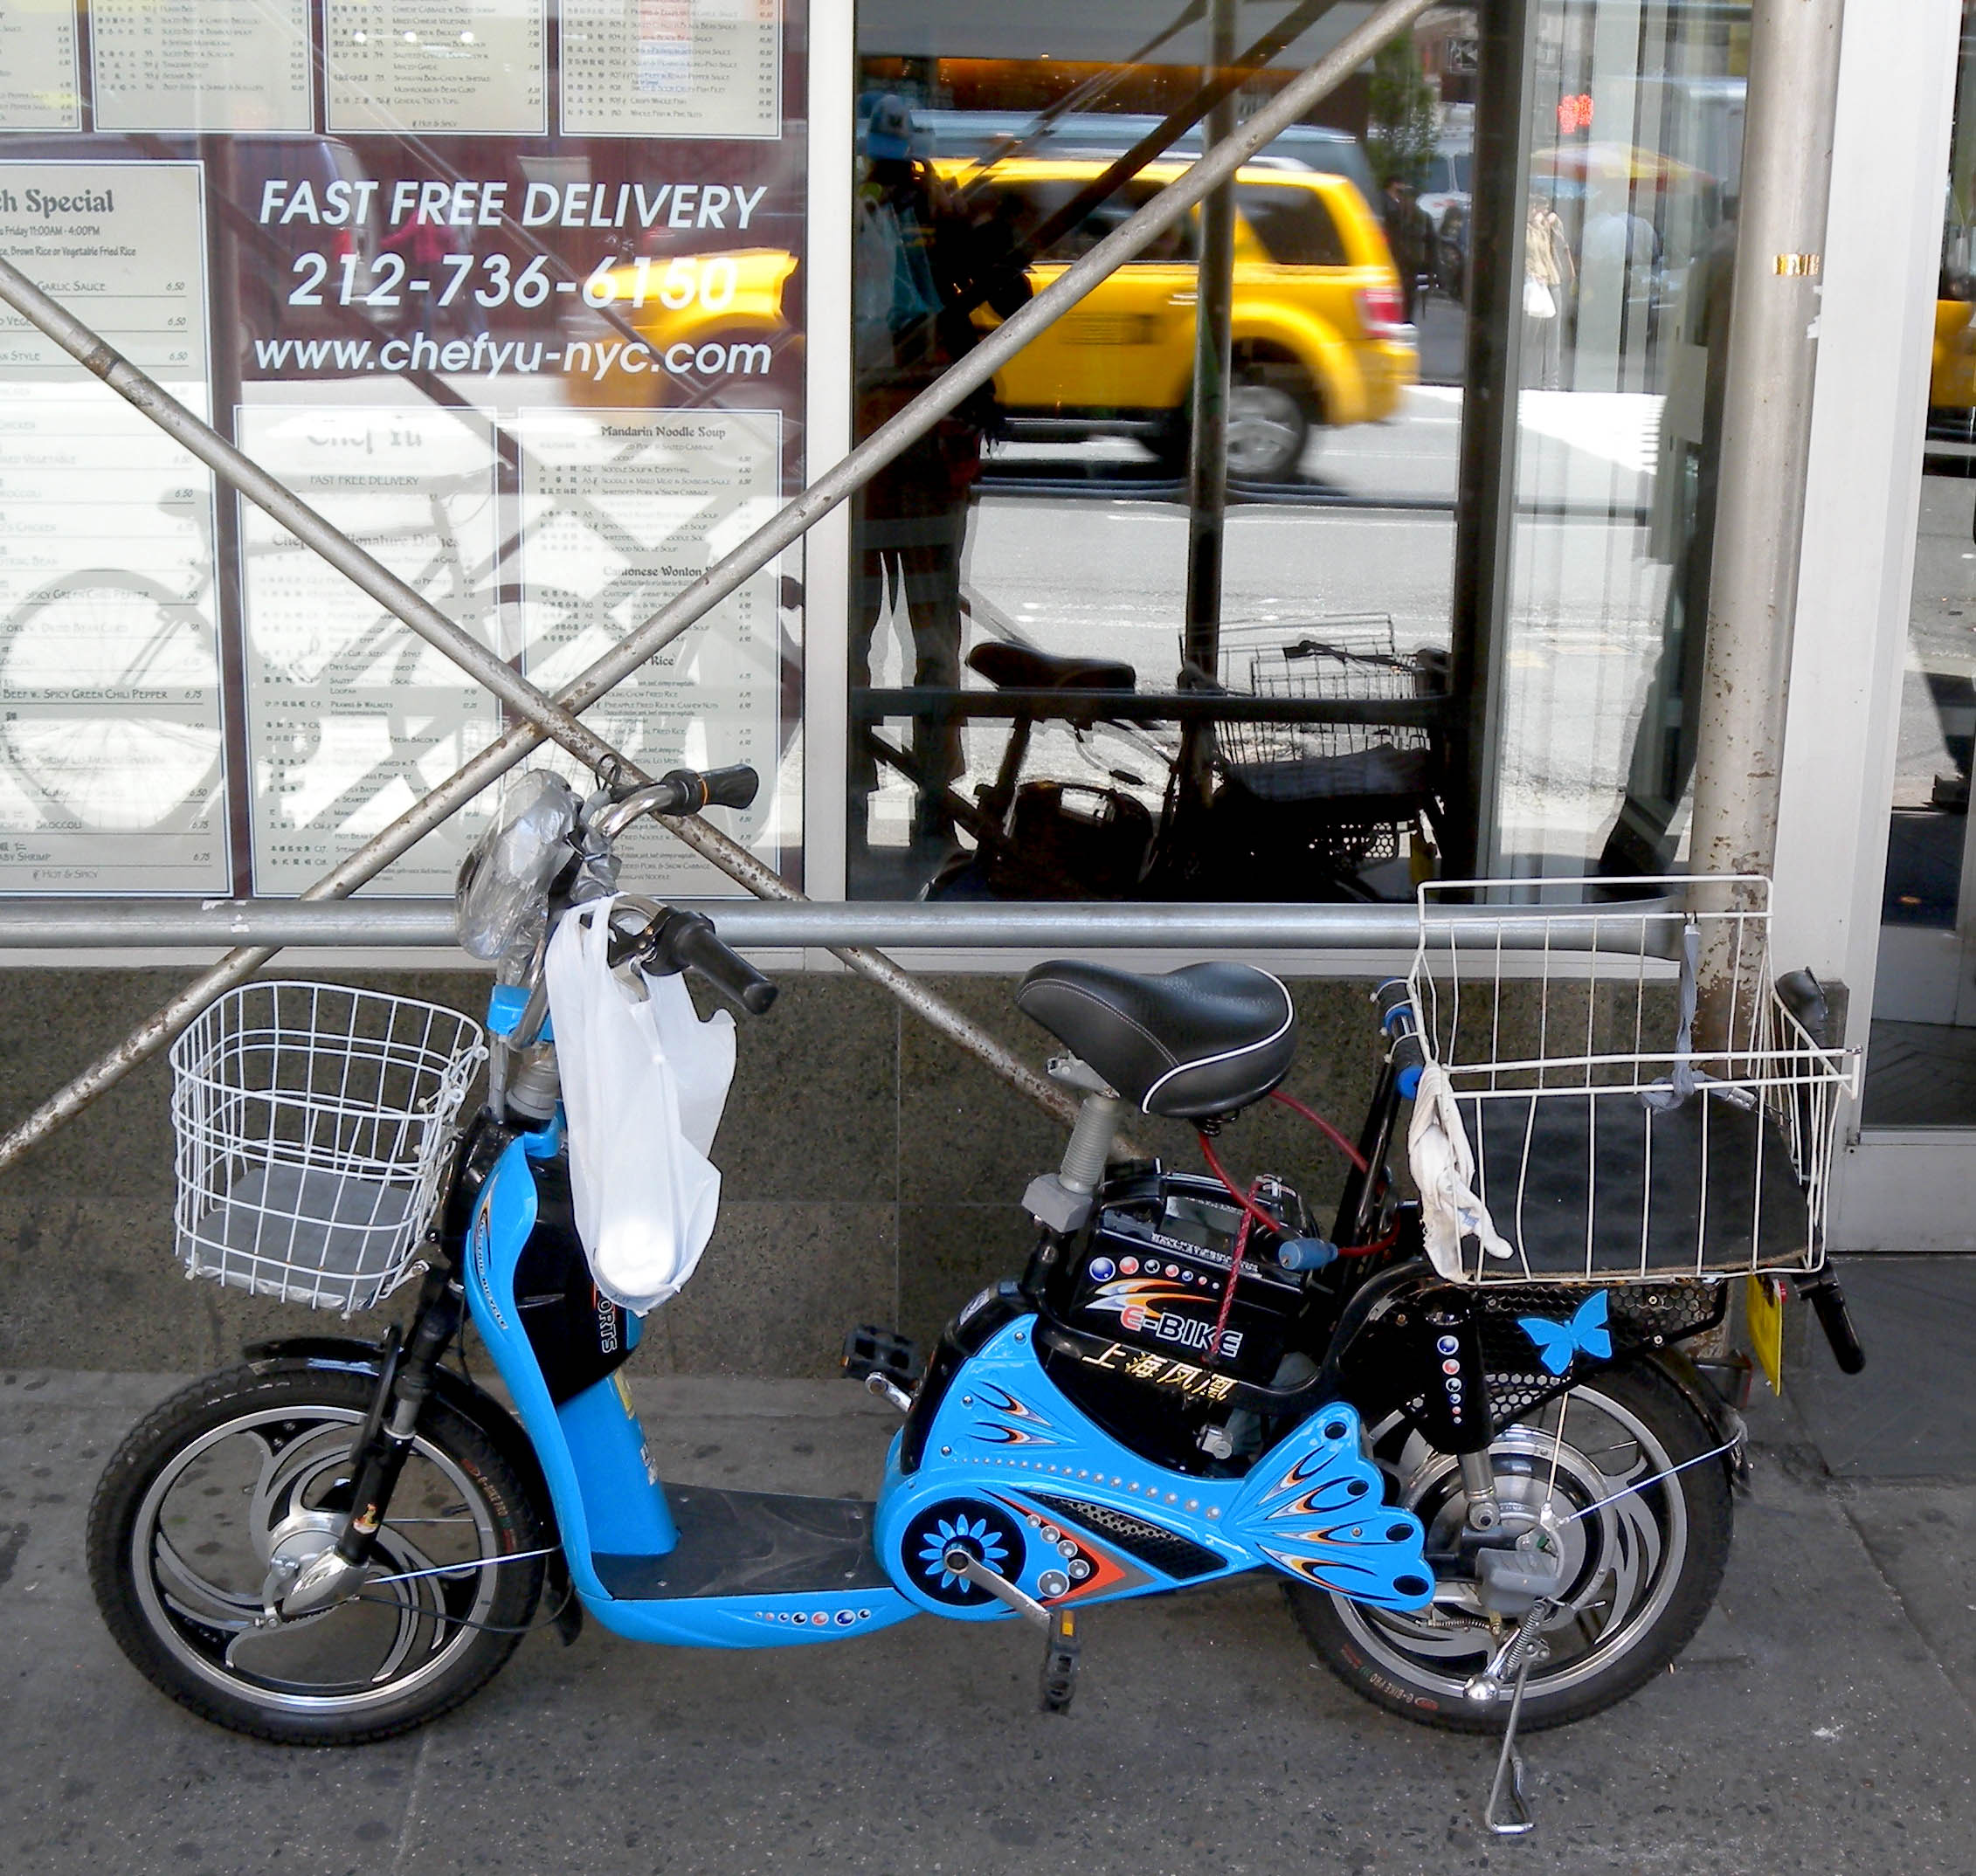 As New York City Struggles to Define Electric Bicycles, It Continues to Impose High Fines -